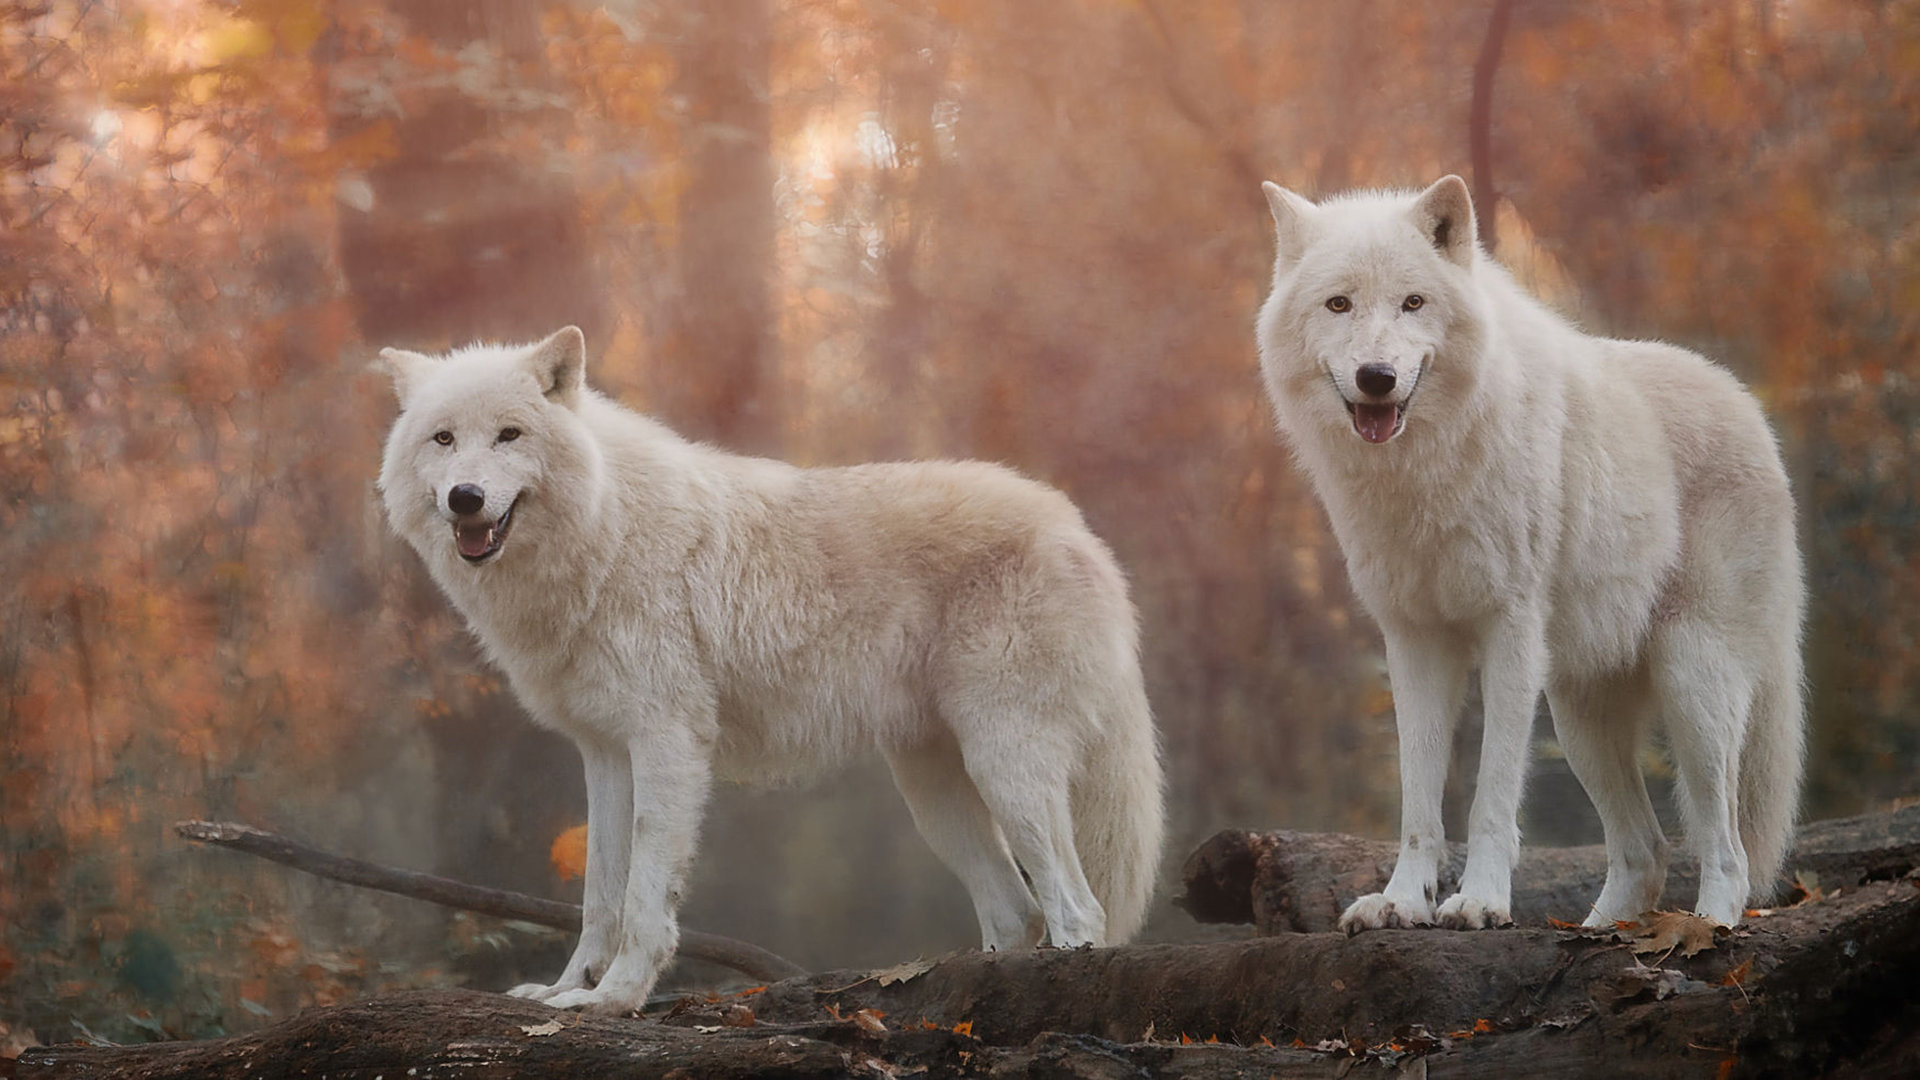 Download 1080p White Wolf computer wallpaper ID:117740 for free